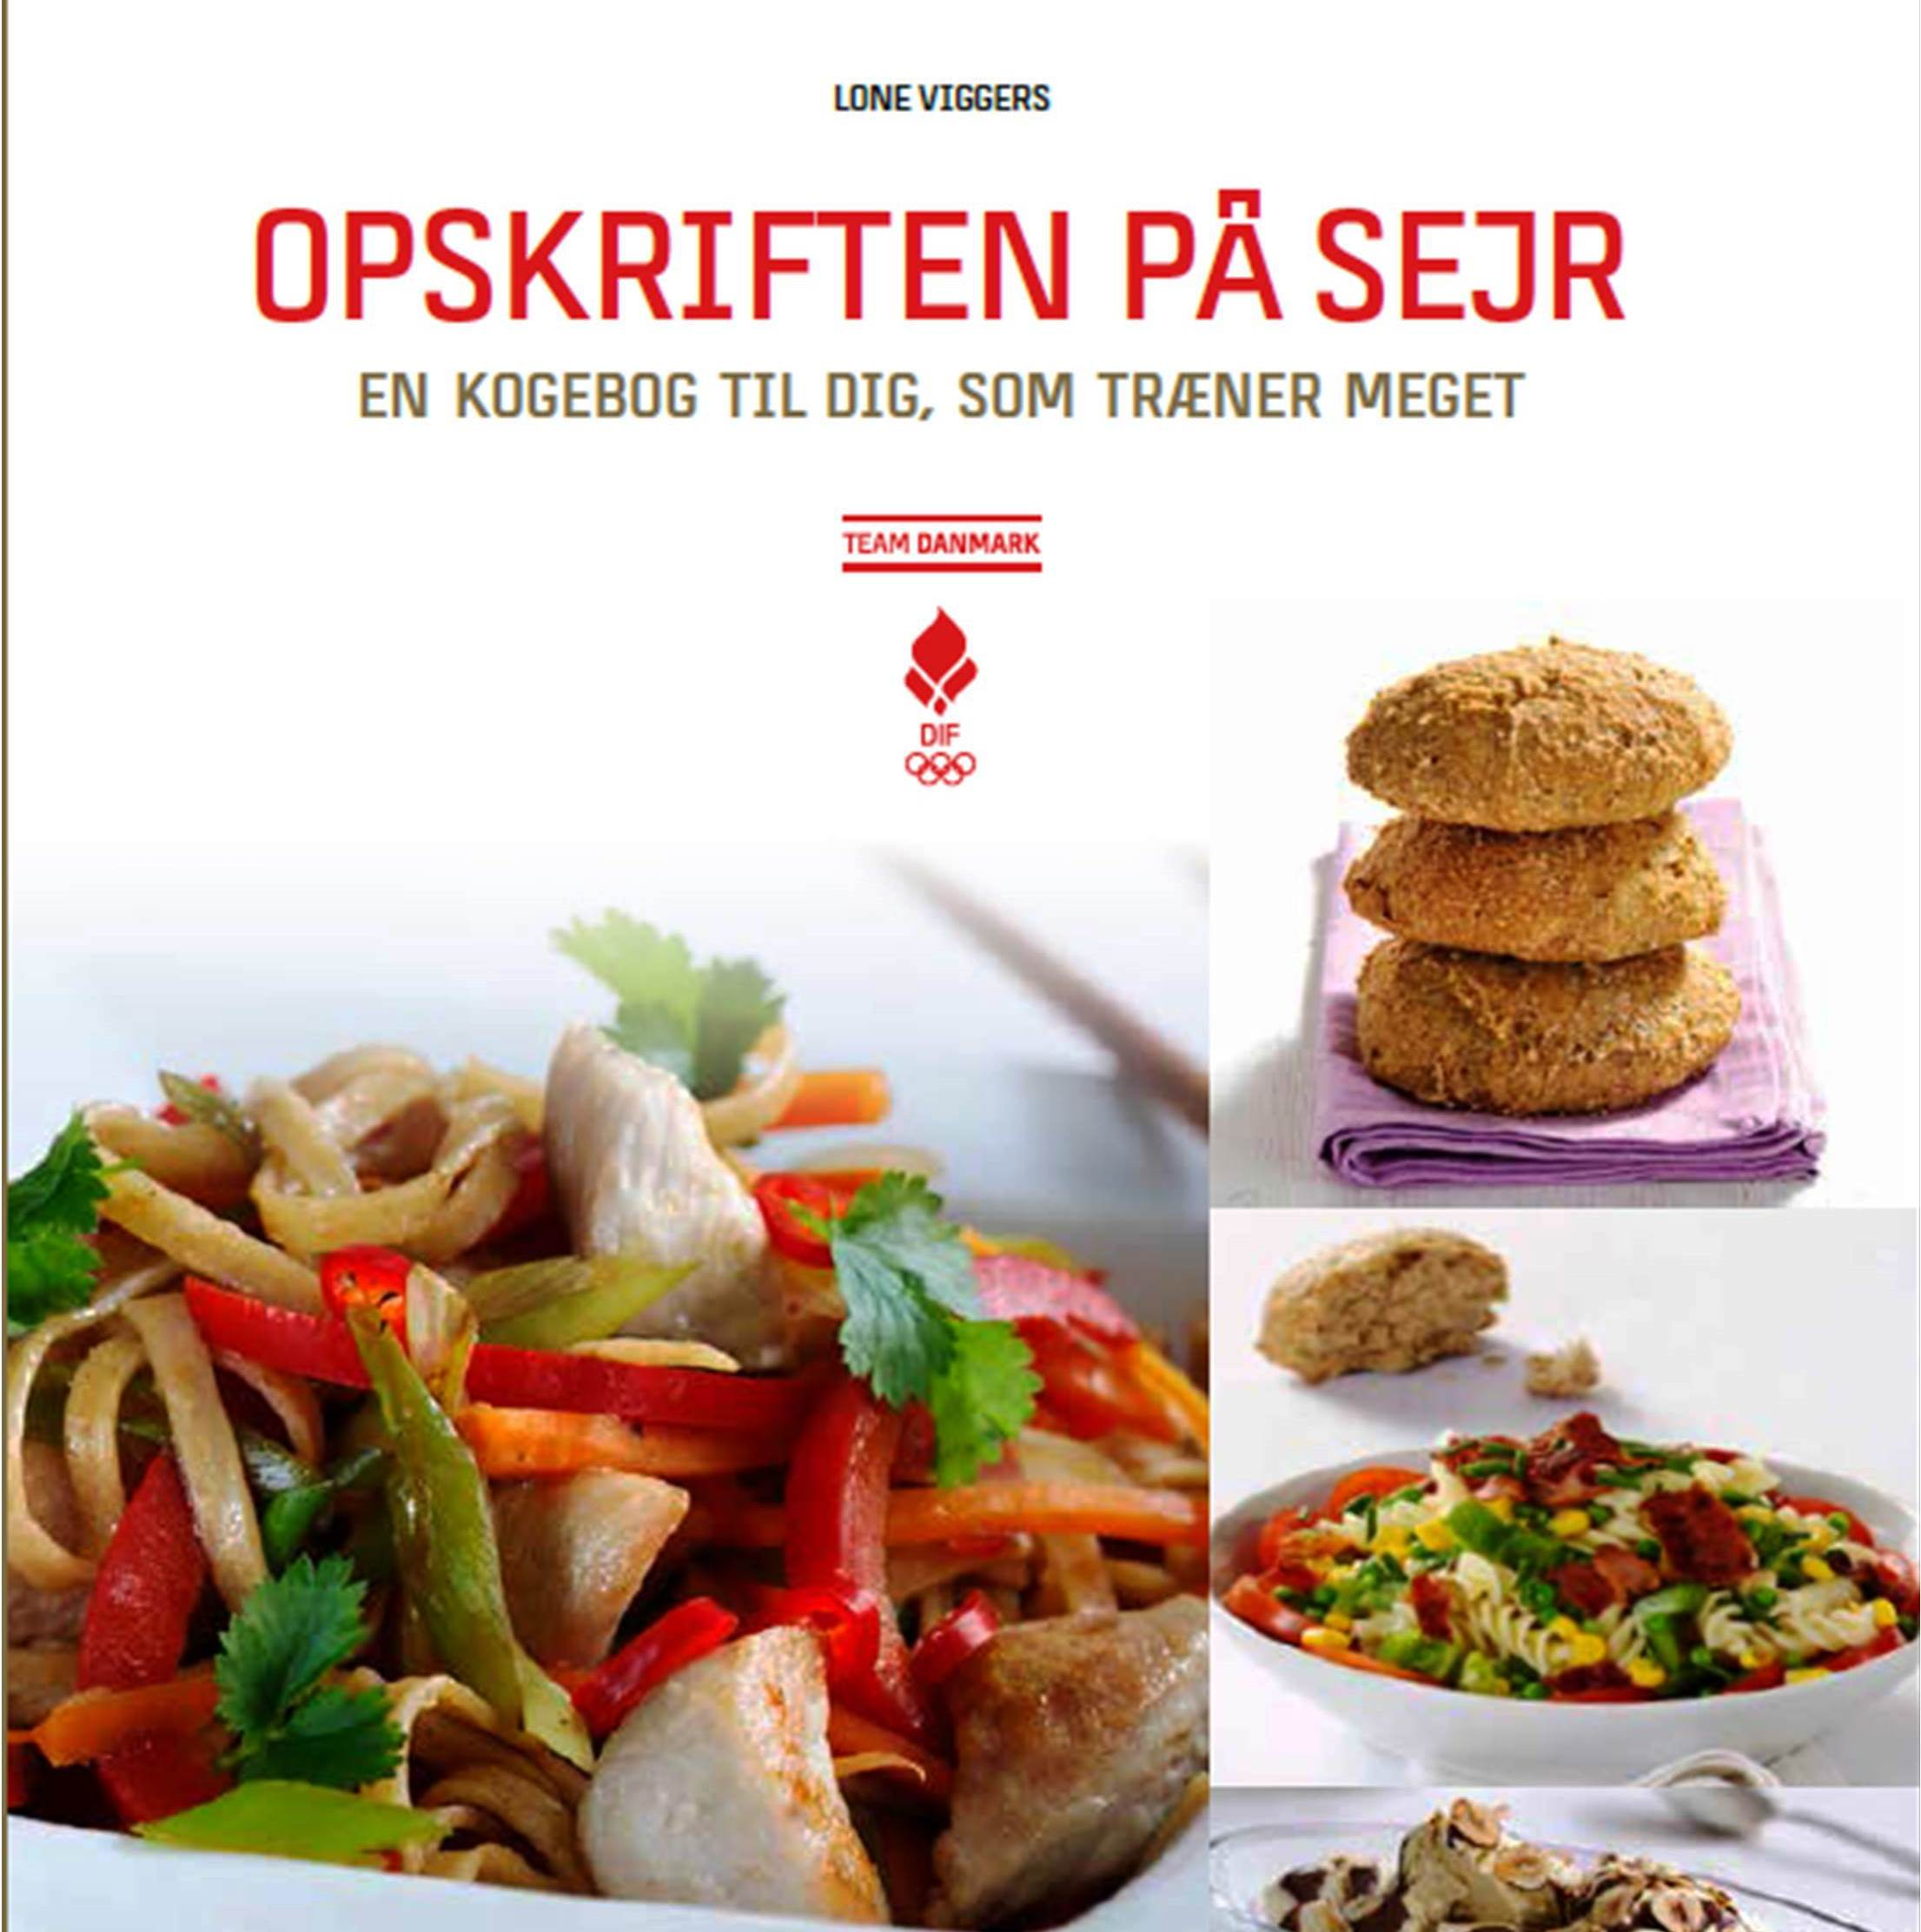 A new healthy eating book for Danish athletes has been launched ©Lone Viggers